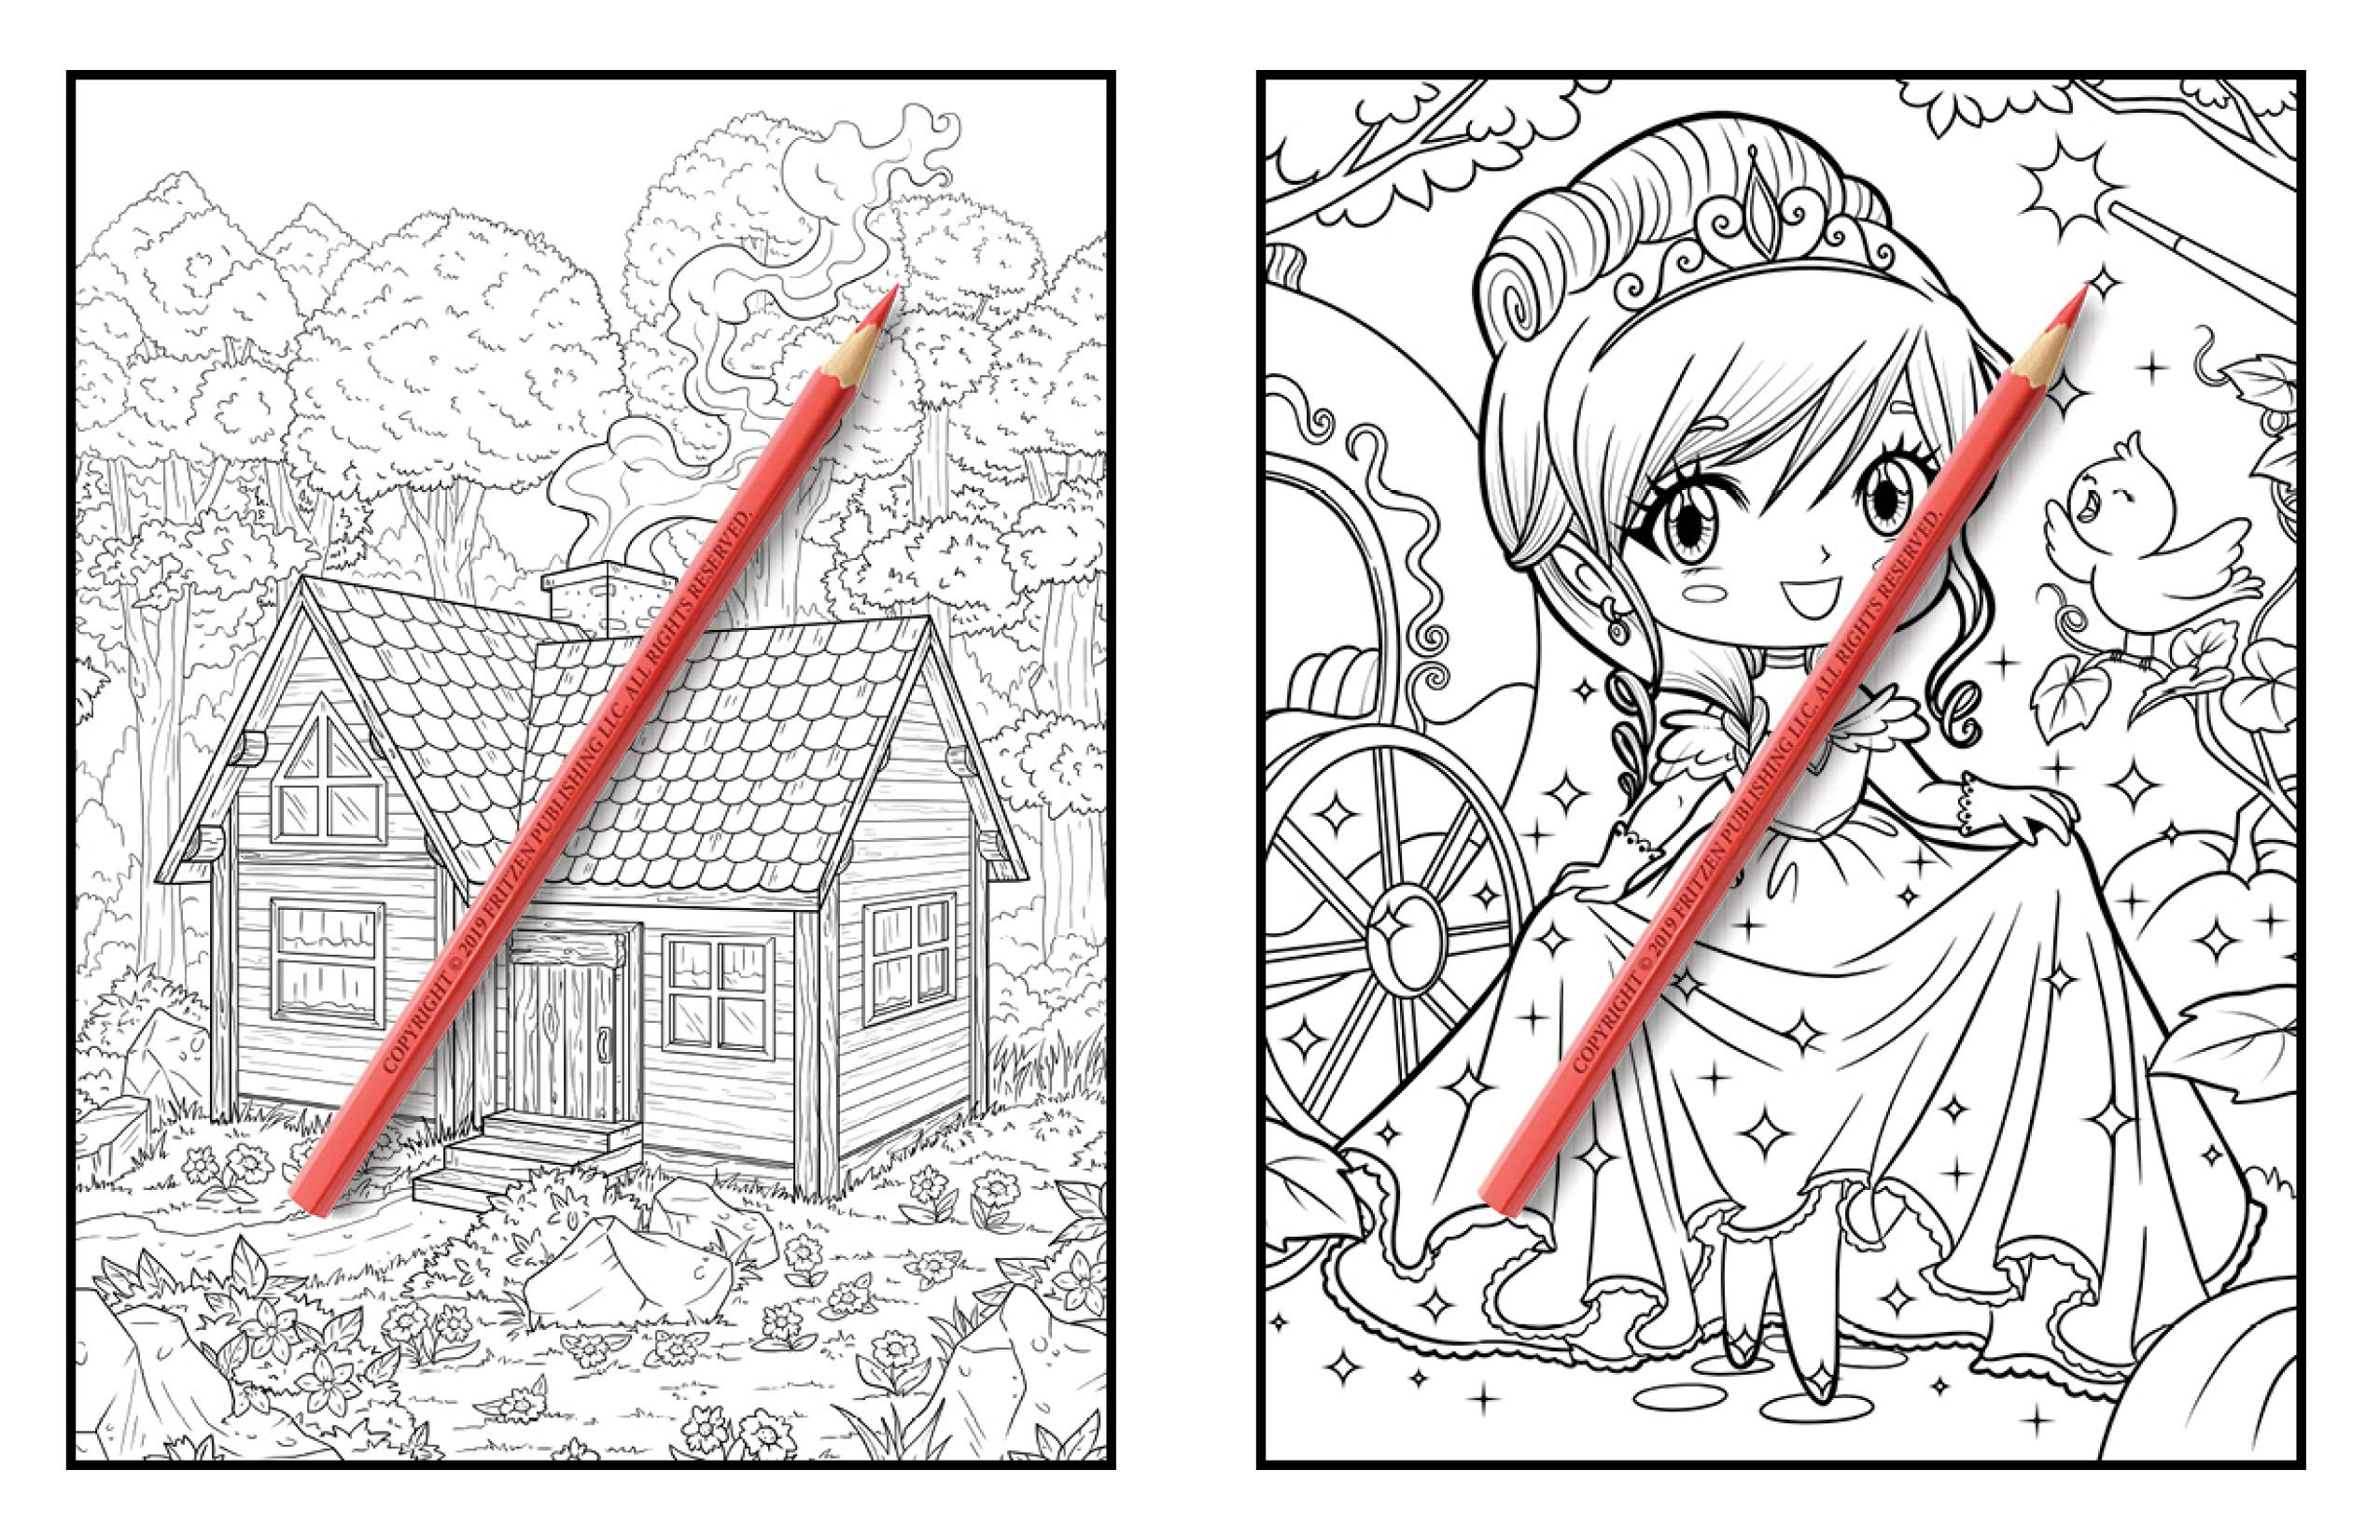 Amazon.com: Greatest Hits: An Adult Coloring Book with the ...